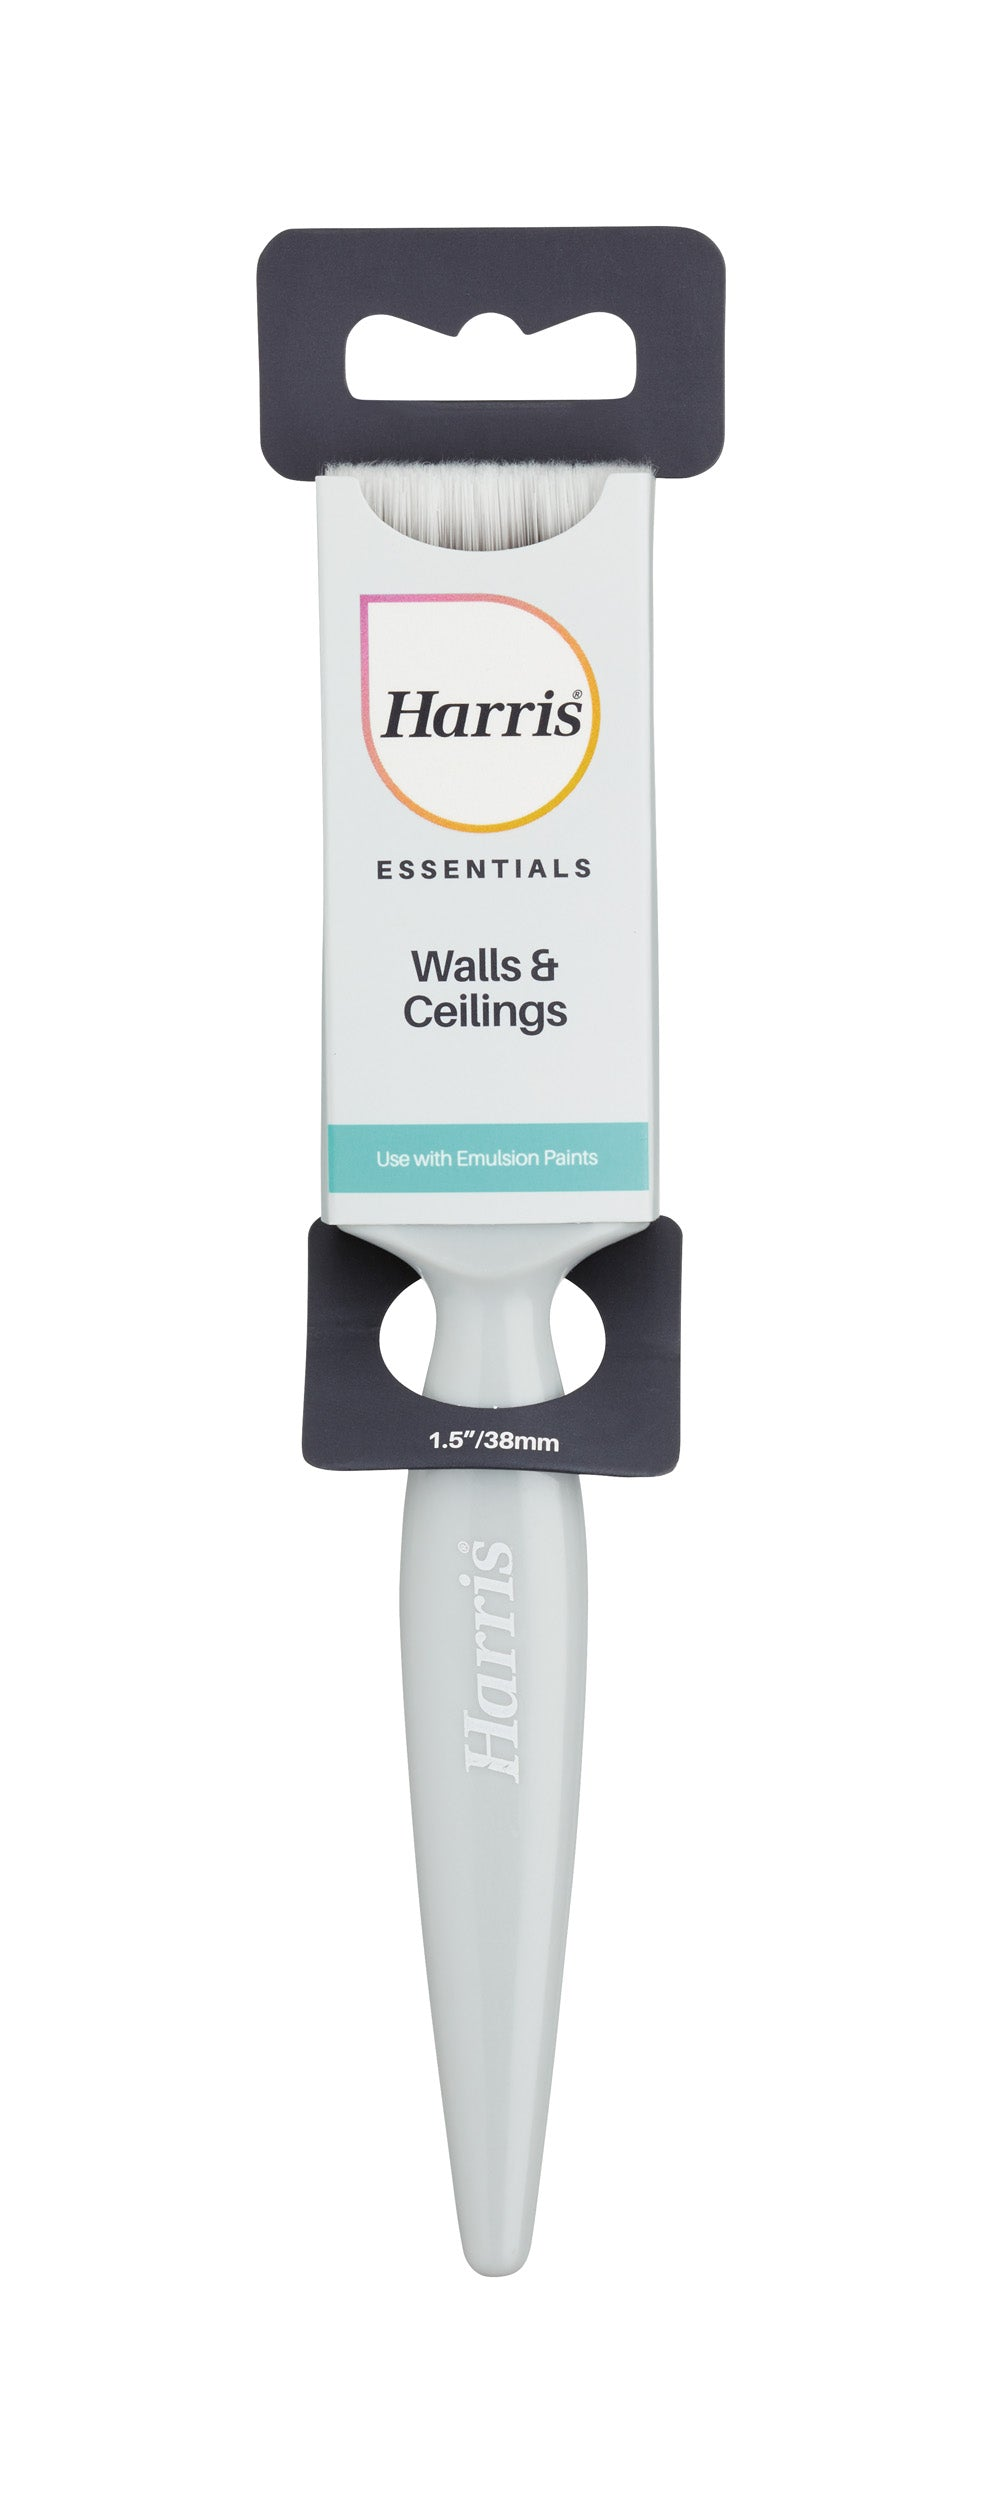 "1.5"" / 38mm Harris Essentials Walls & Ceilings Brush"